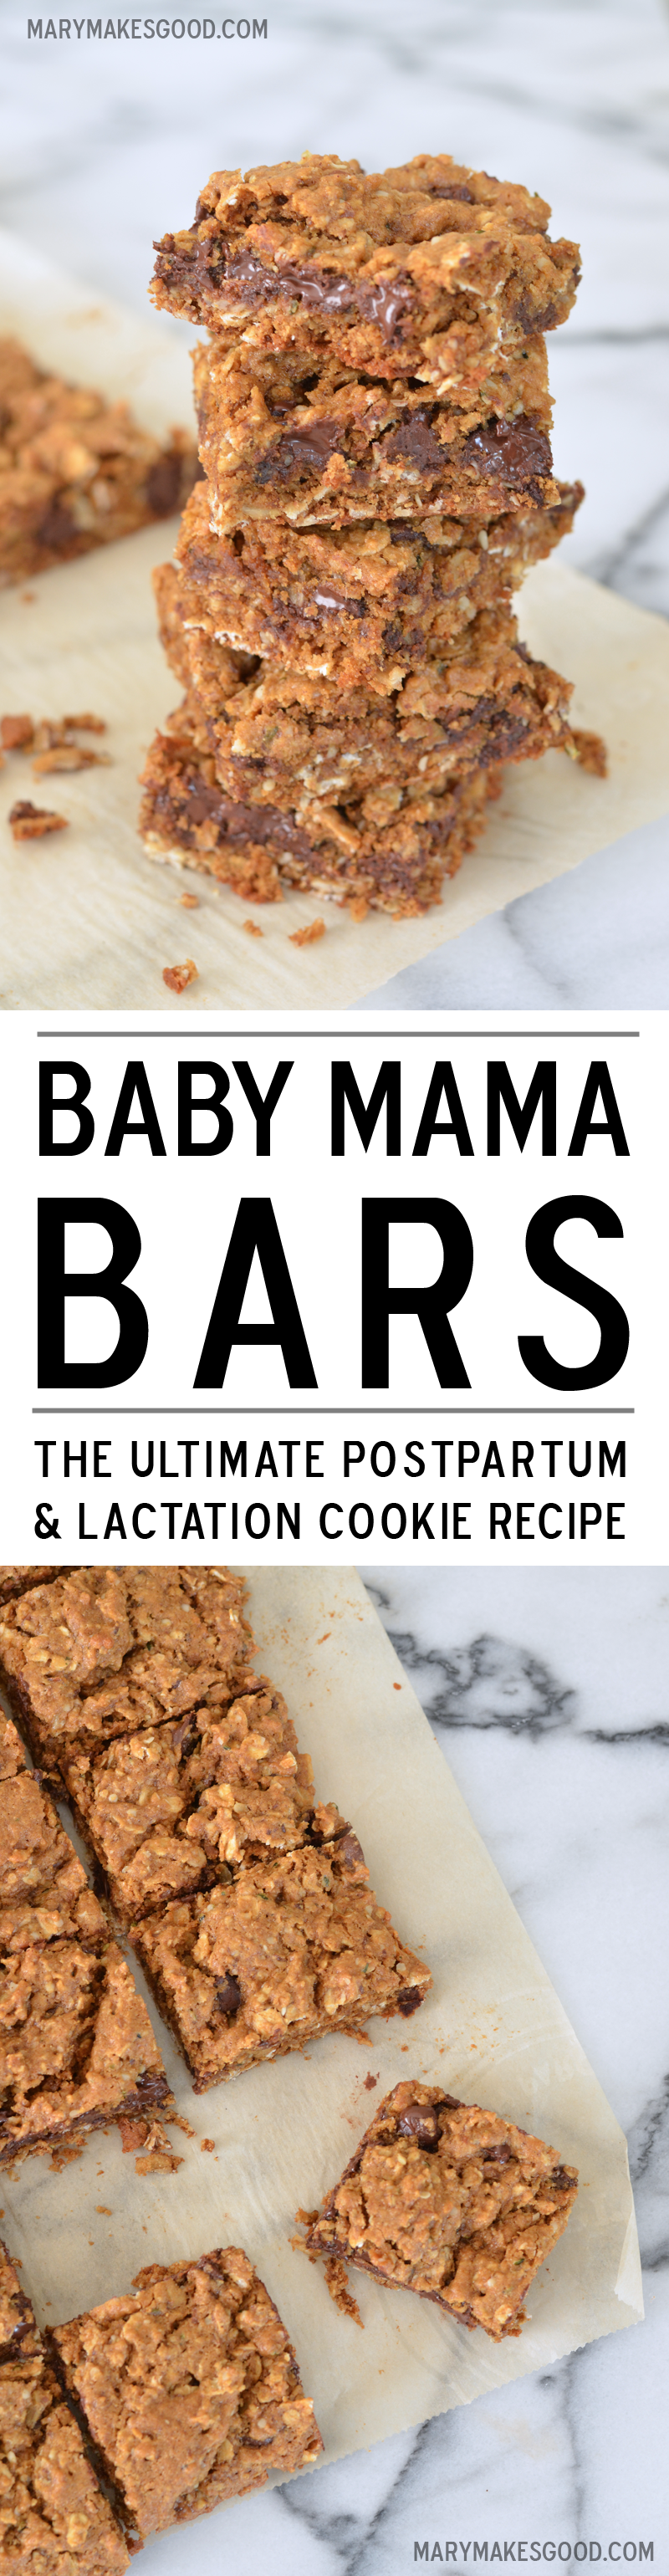 Postpartum Lactation Cookie Recipe